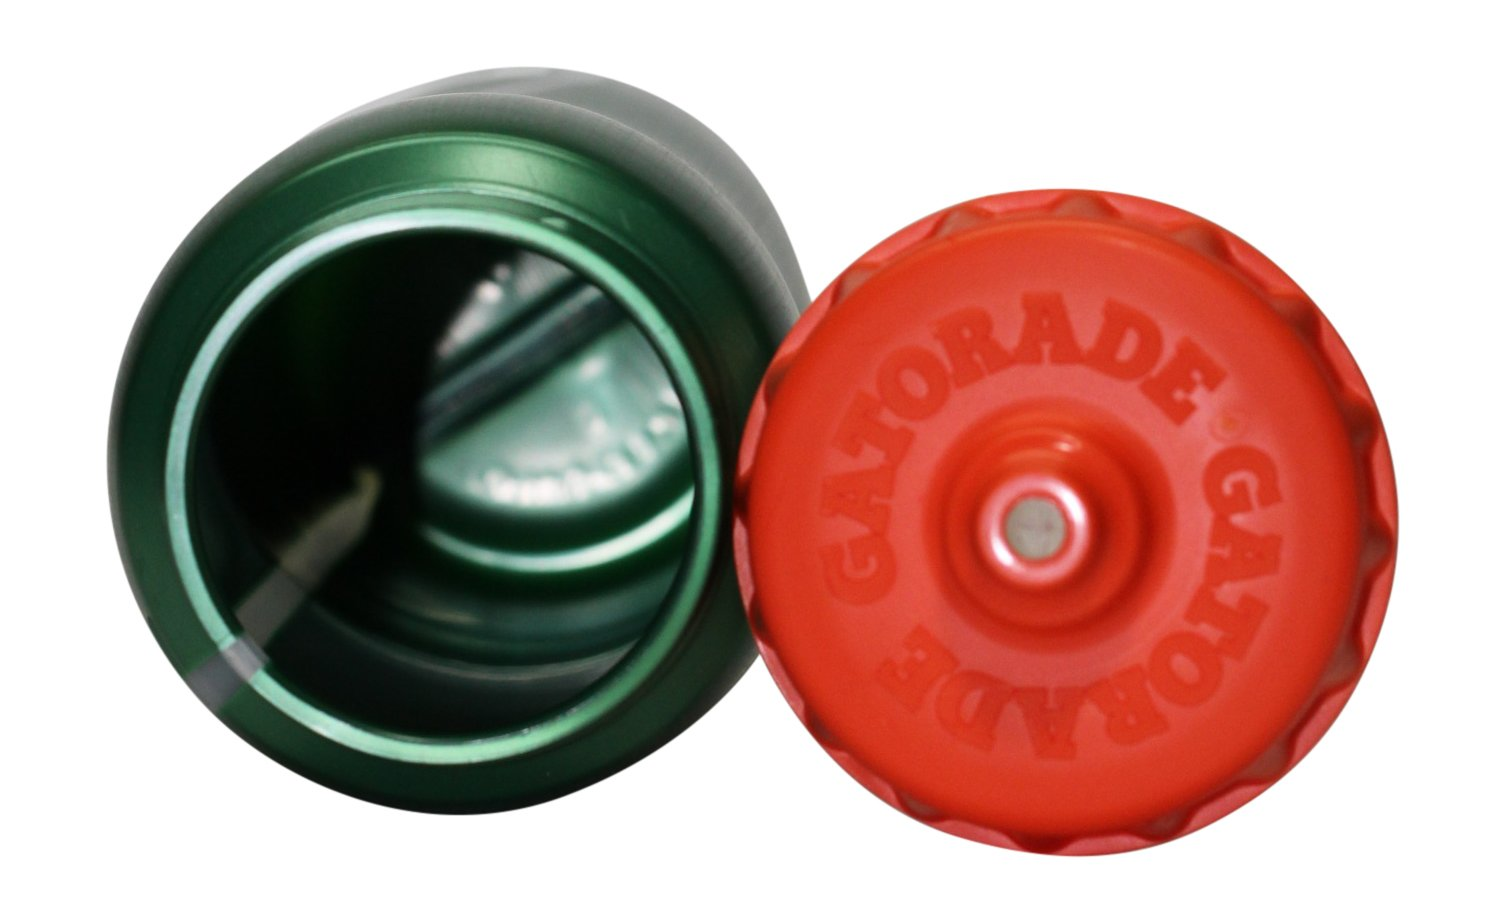 Gatorade 32 Oz Squeeze Water Sports Bottle - Value Pack of 6 - New Easy Grip Design for 2014 by Gatorade (Image #4)